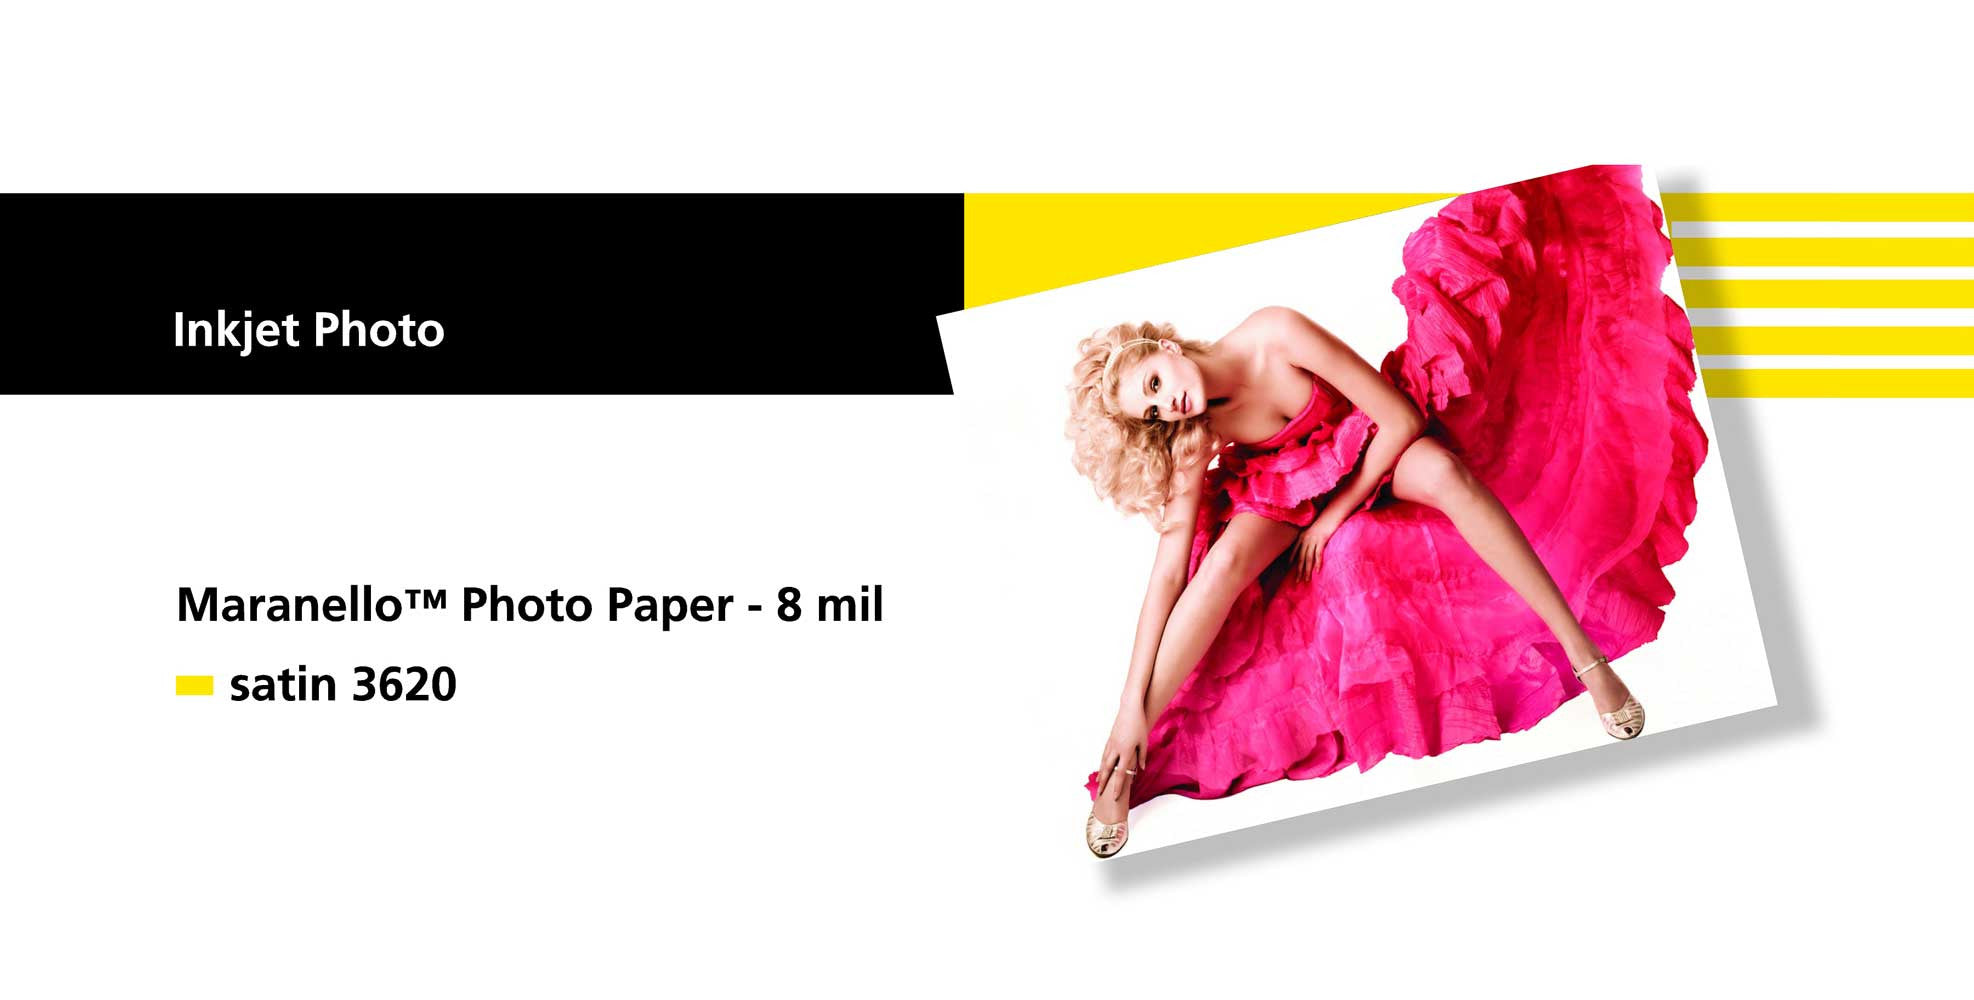 Sihl 3620 Maranello S Photo Paper Satin 8 mil